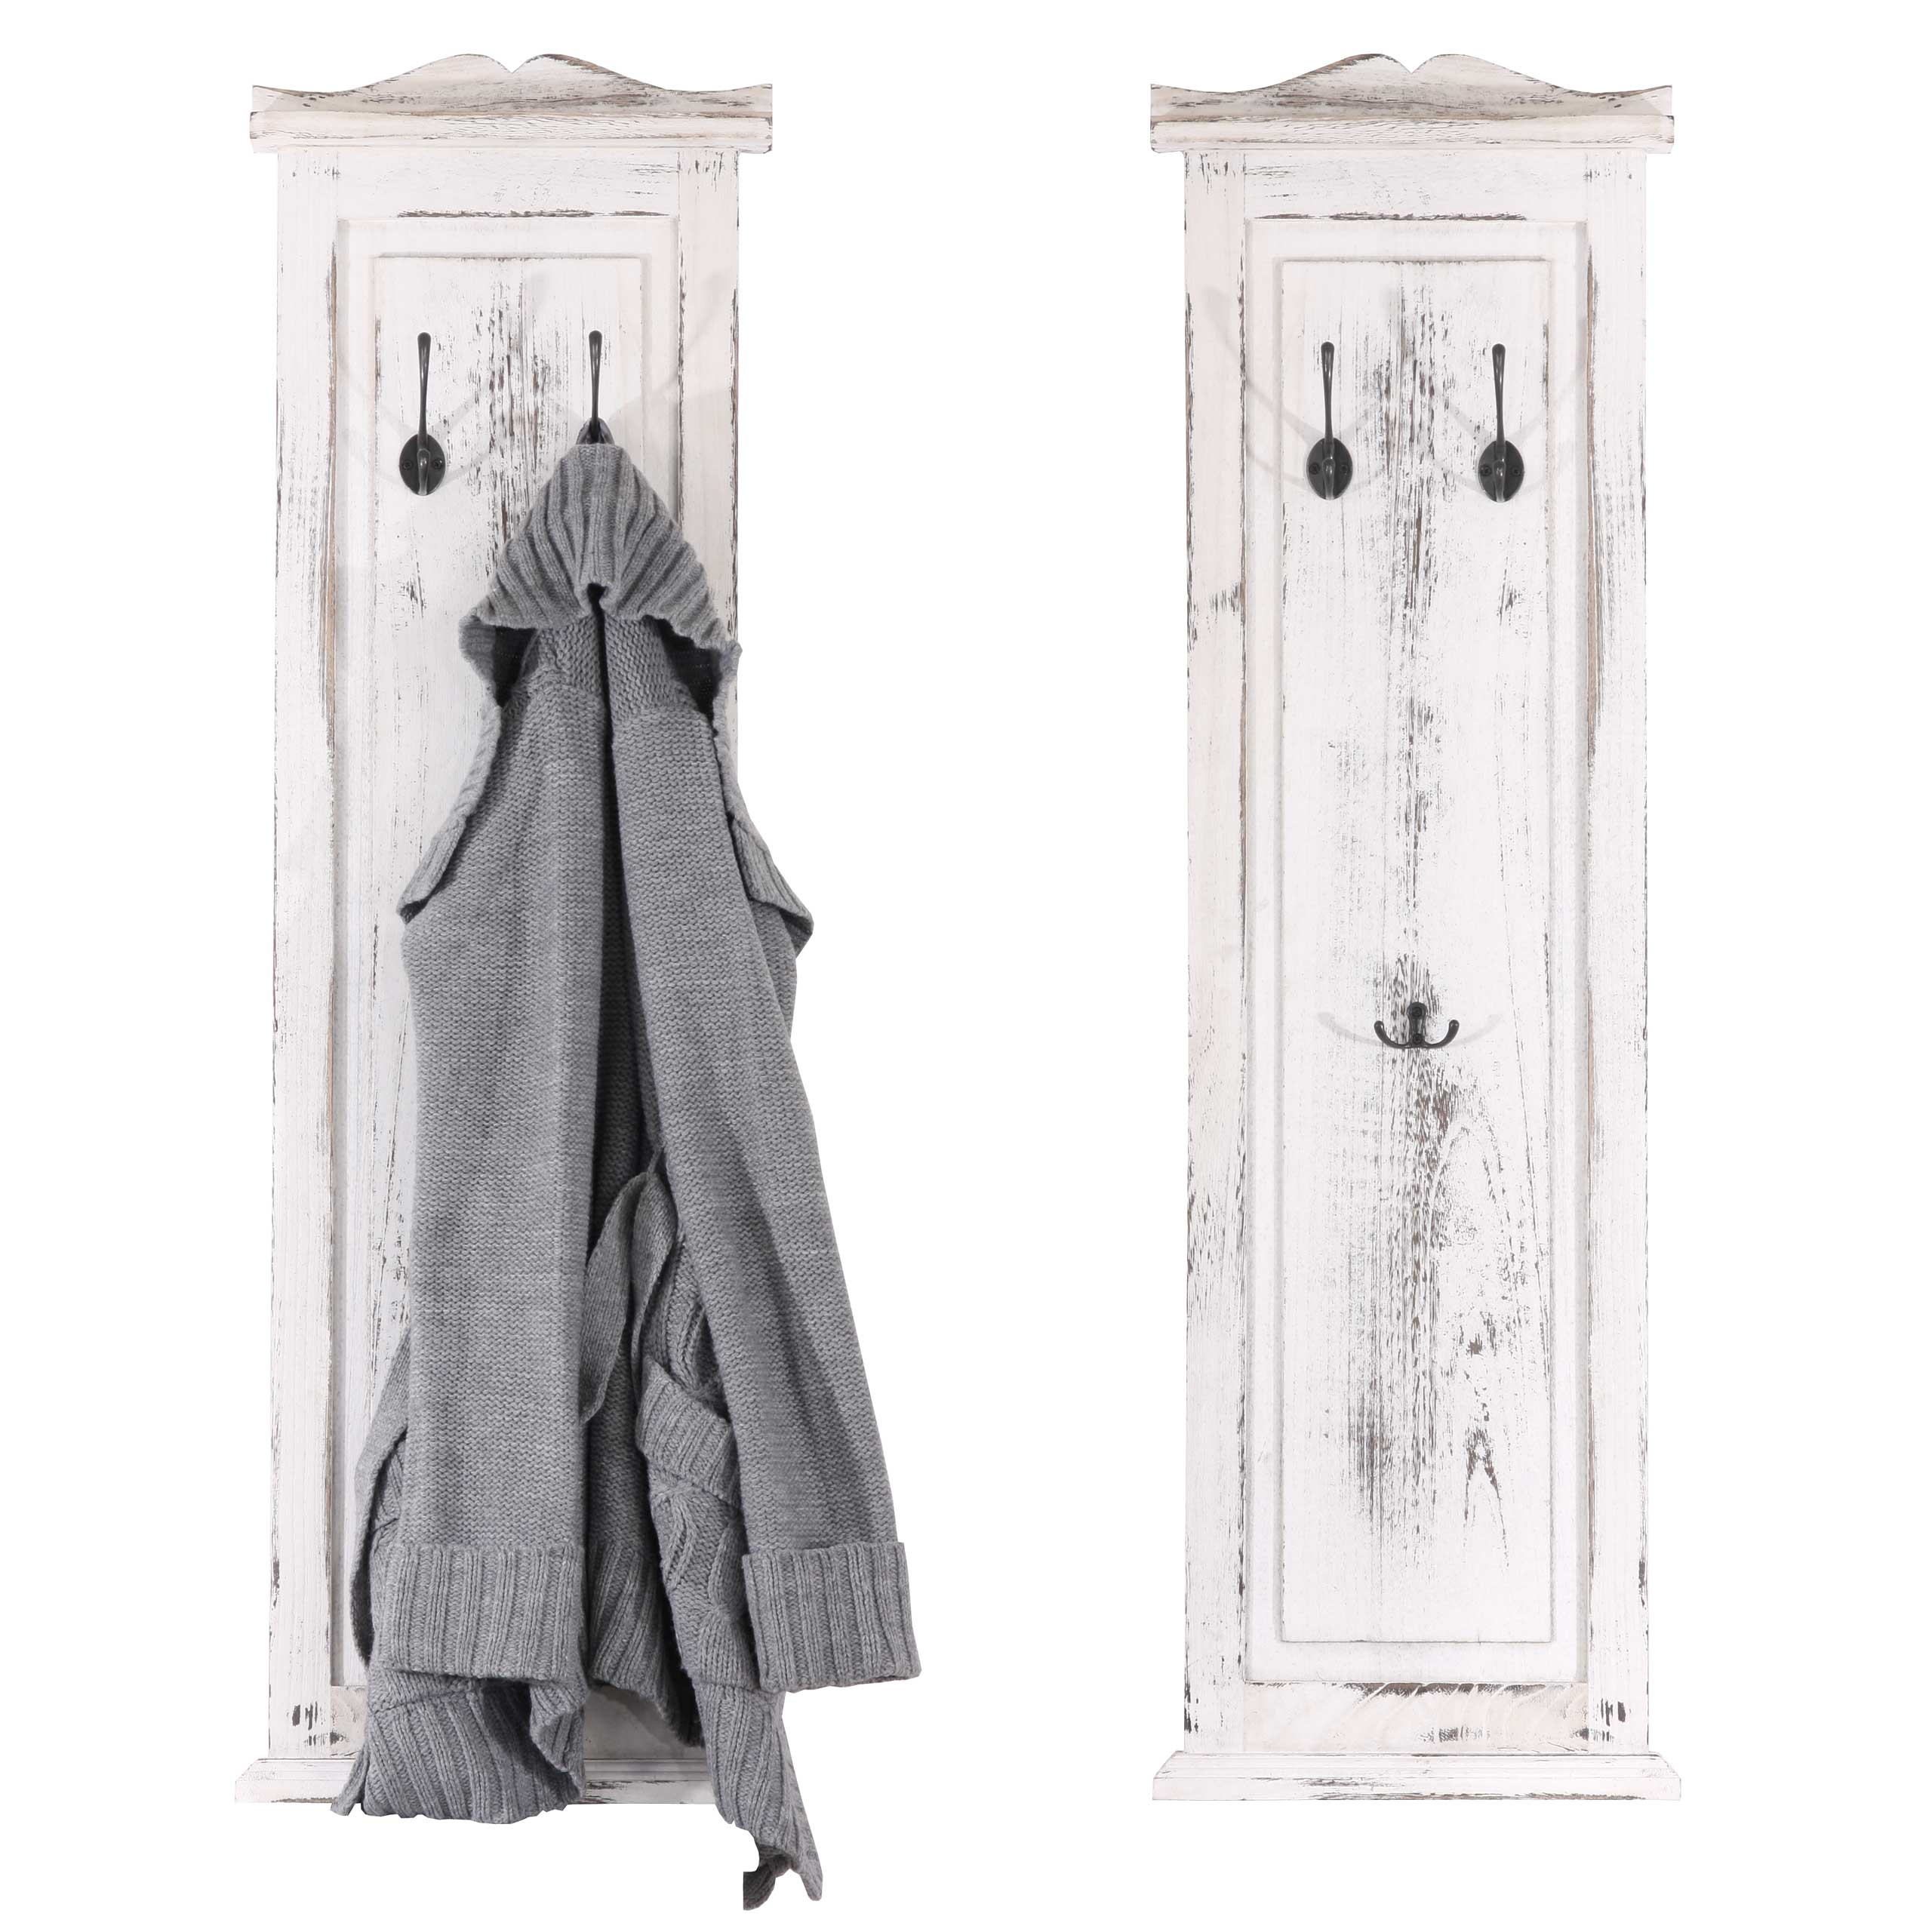 2x garderobe wandgarderobe wandhaken 109x28x3 5cm shabby look vintage wei ebay. Black Bedroom Furniture Sets. Home Design Ideas